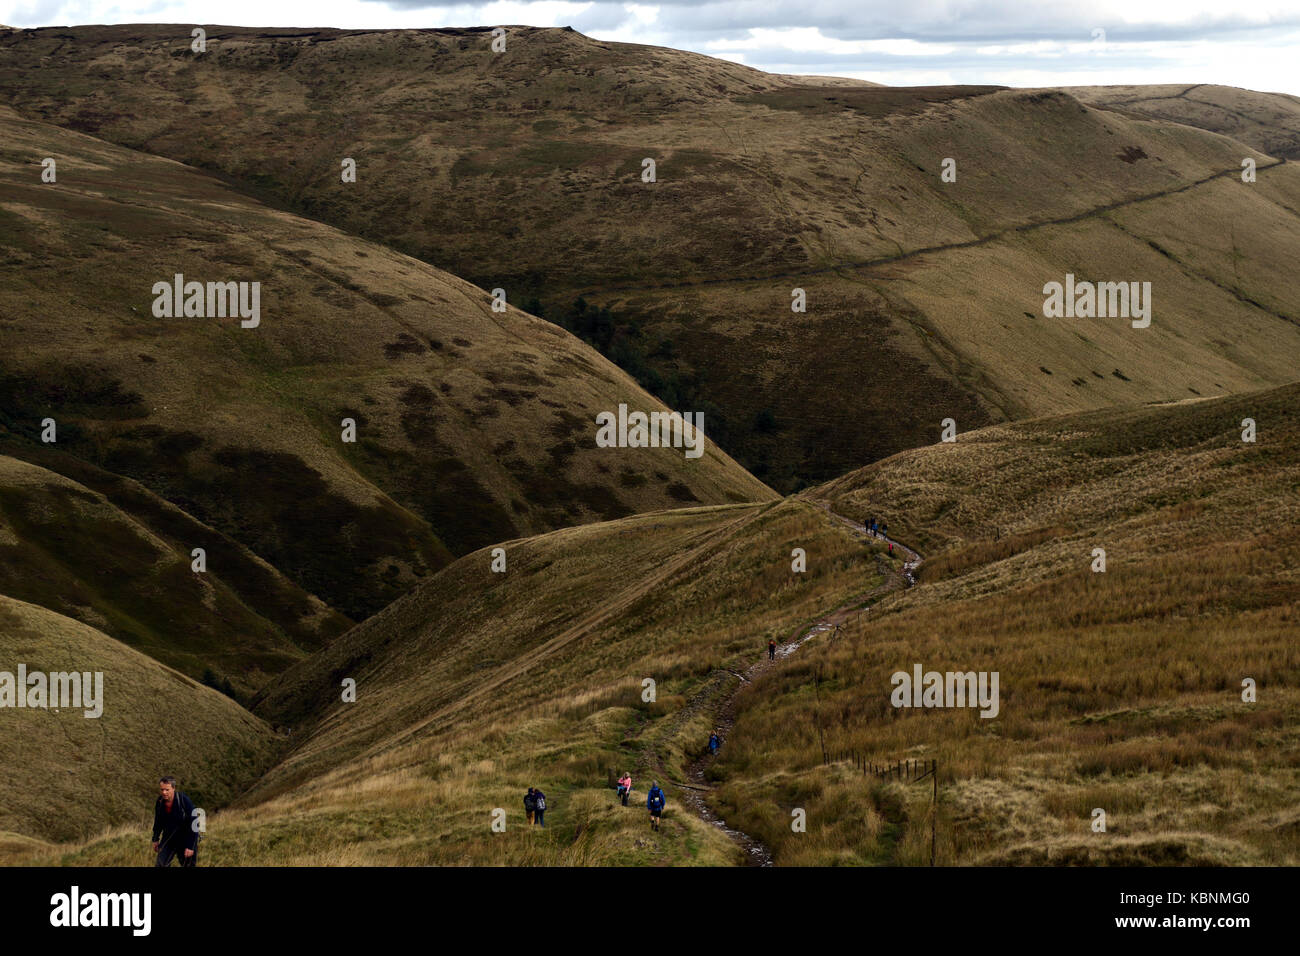 View back down the Pennine Way, towards Edale, from the climb up Kinder Scout - Stock Image